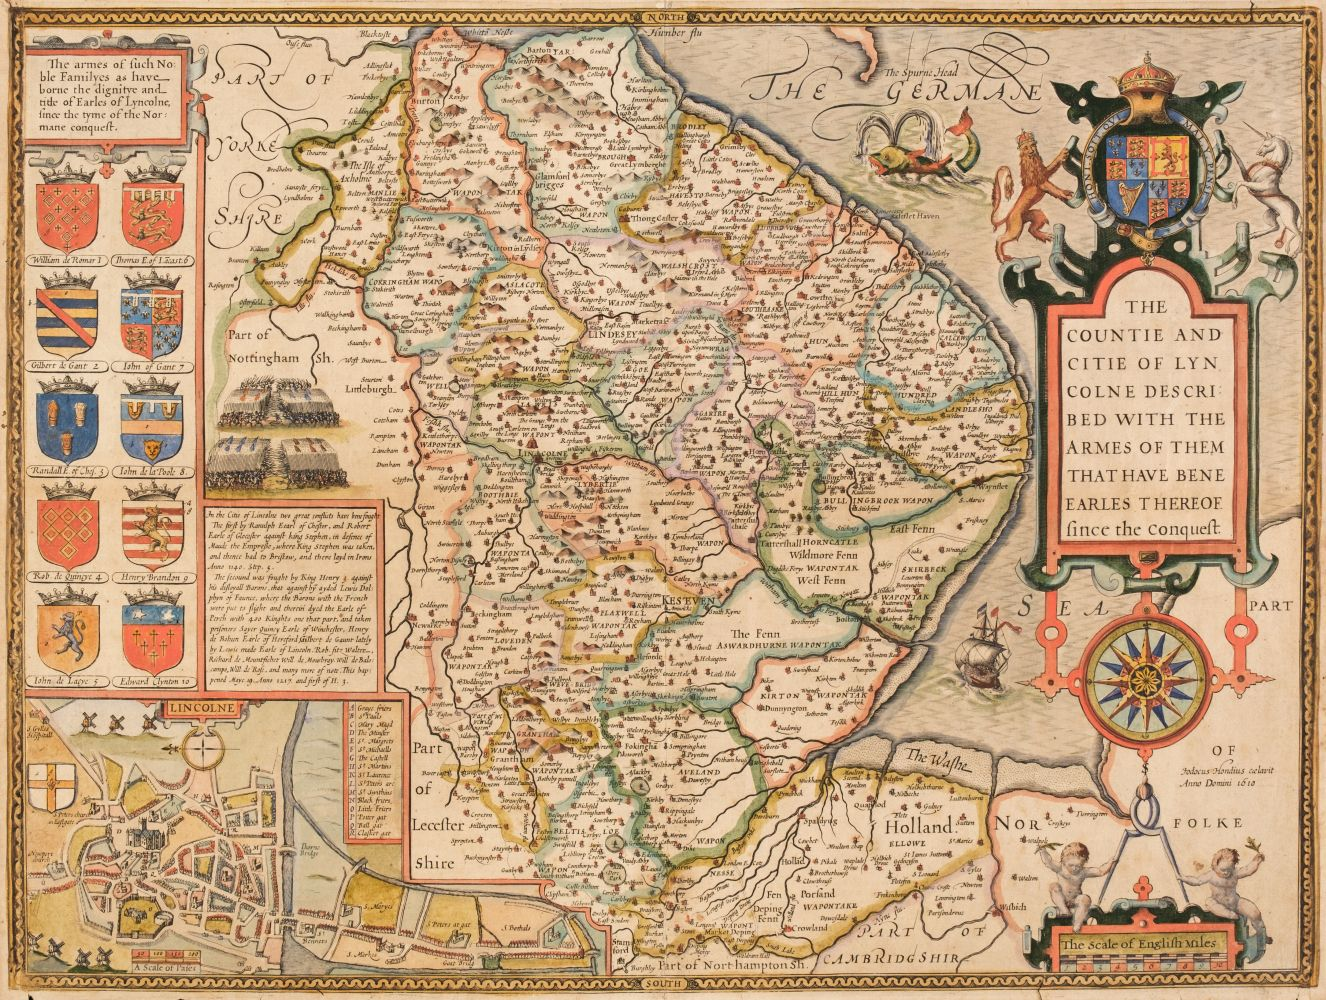 Lincolnshire. Speed (John), The Countie and Citie of Lincolne Described..., circa 1627